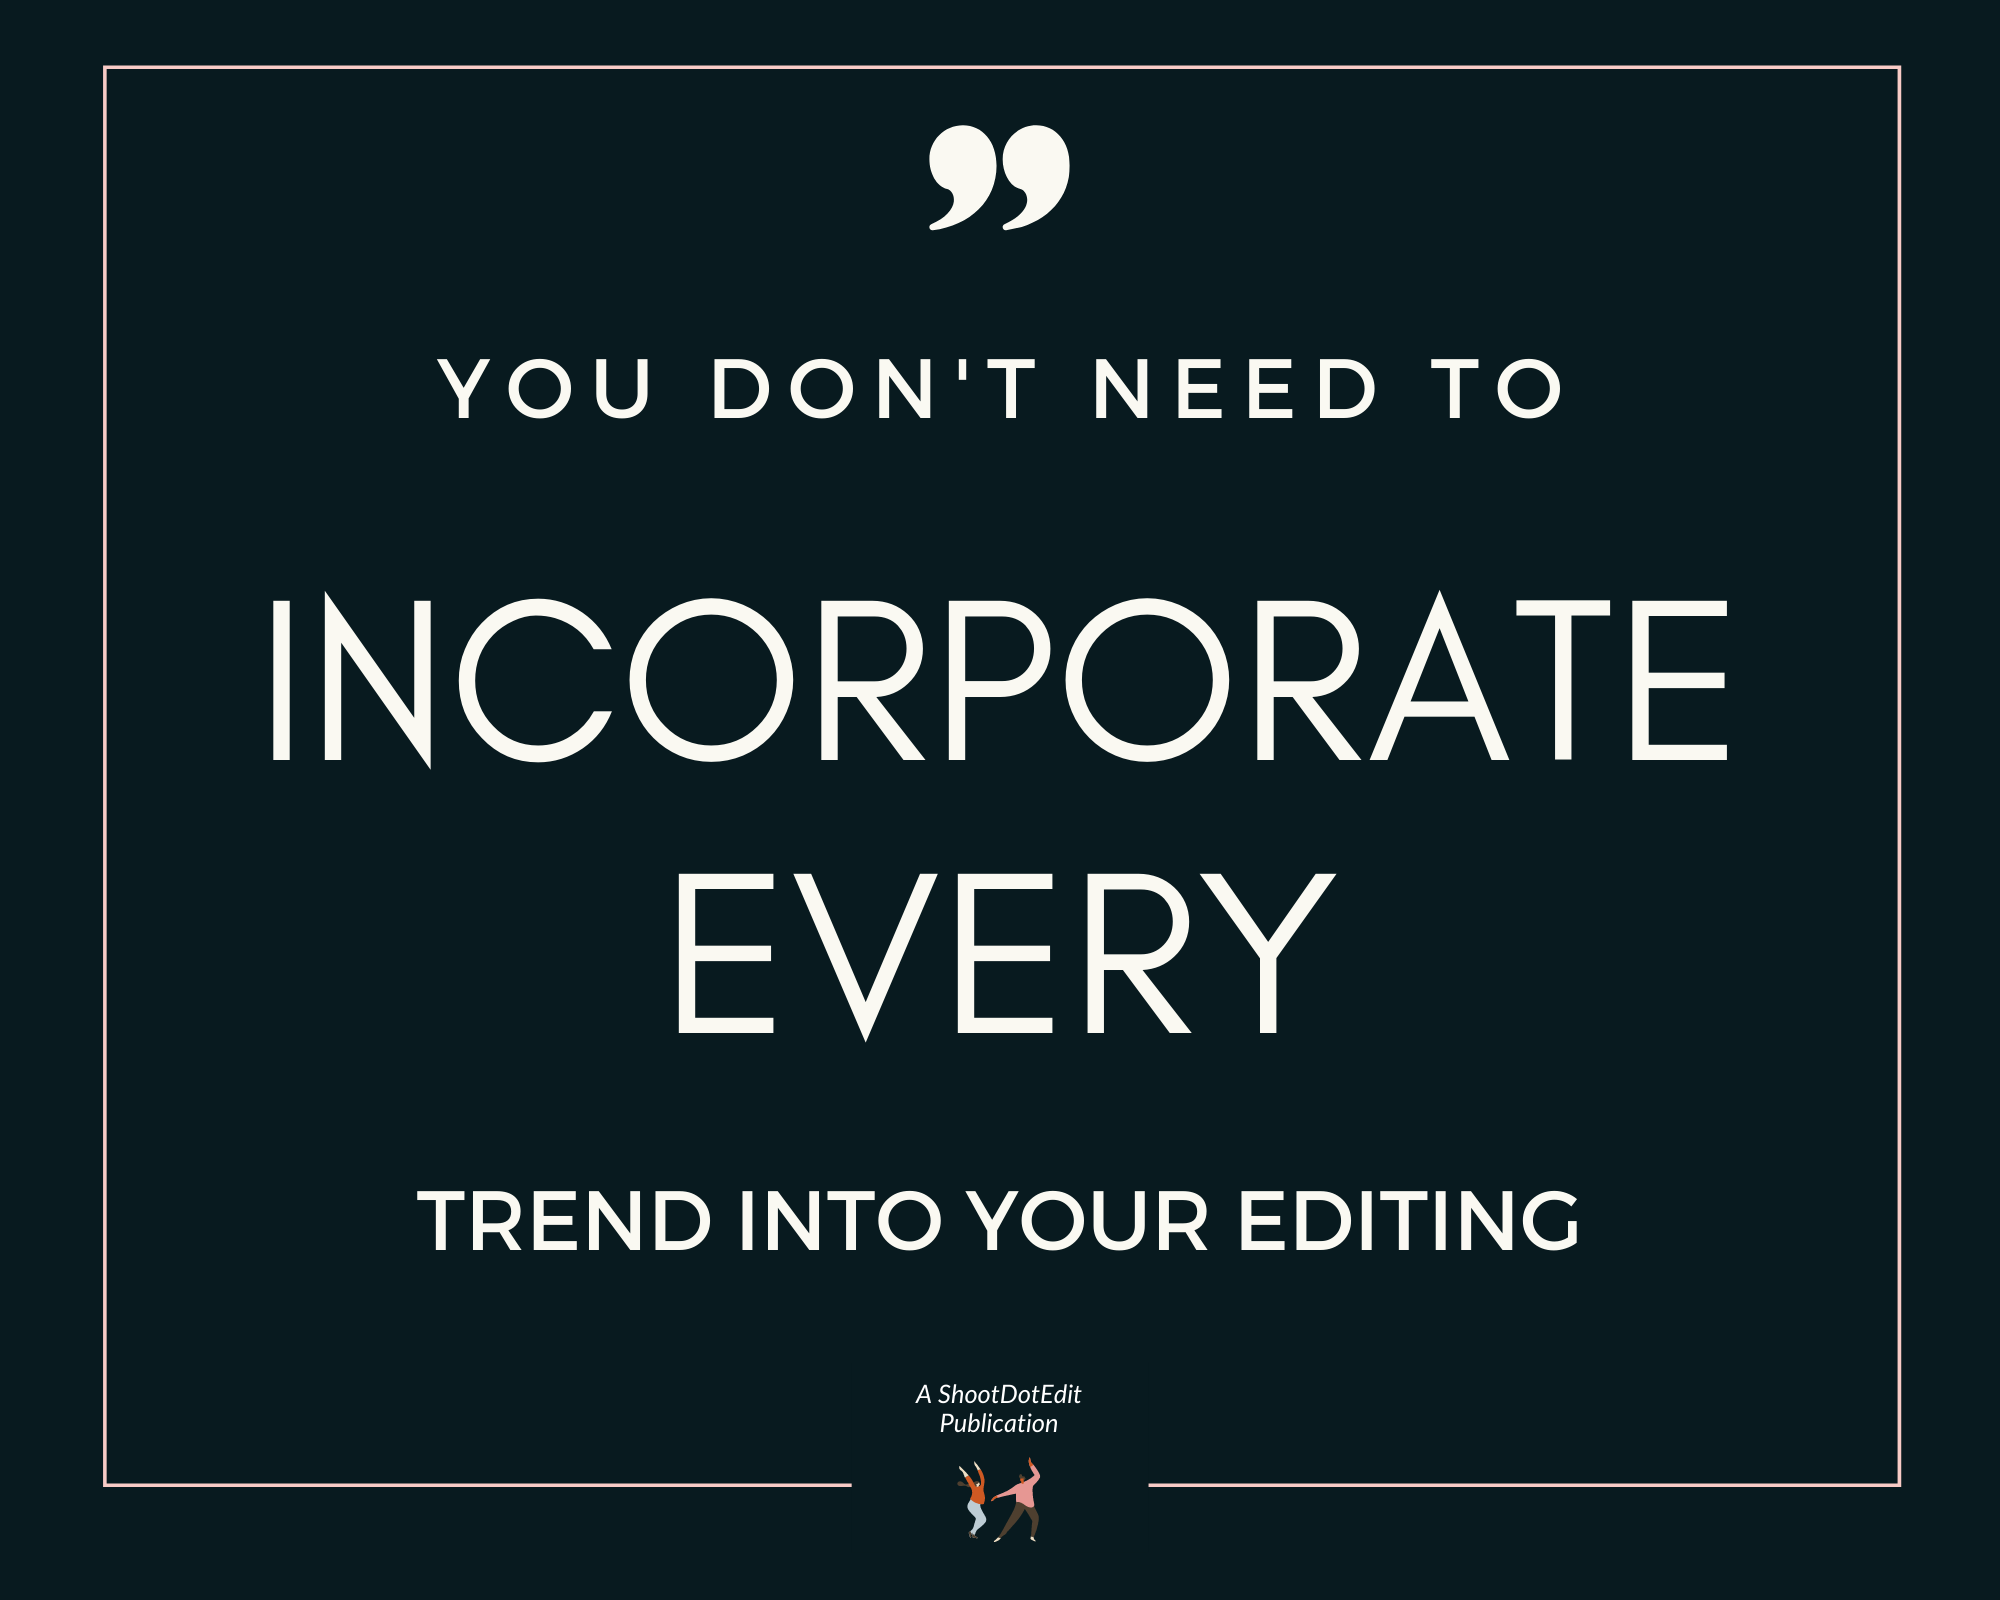 Infographic stating you do not need to incorporate every wedding photo editing trend into your editing